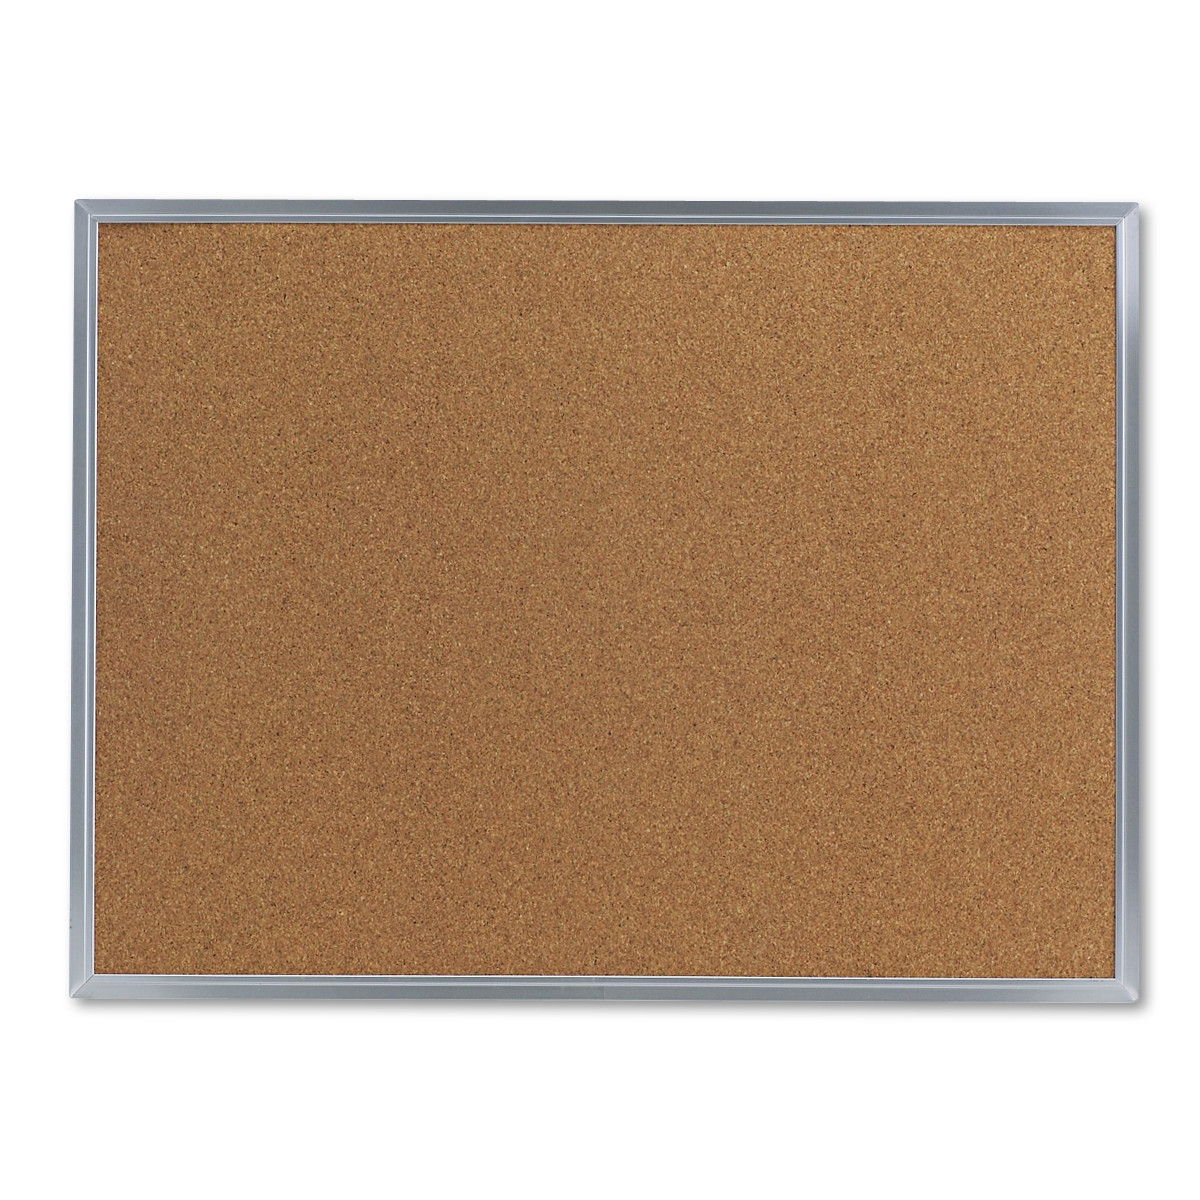 2 x 15 Inch Home Frameless Cork Board Memo Strip for Office School Lockways Cork Bulletin Bar Strip Set 4 piceses